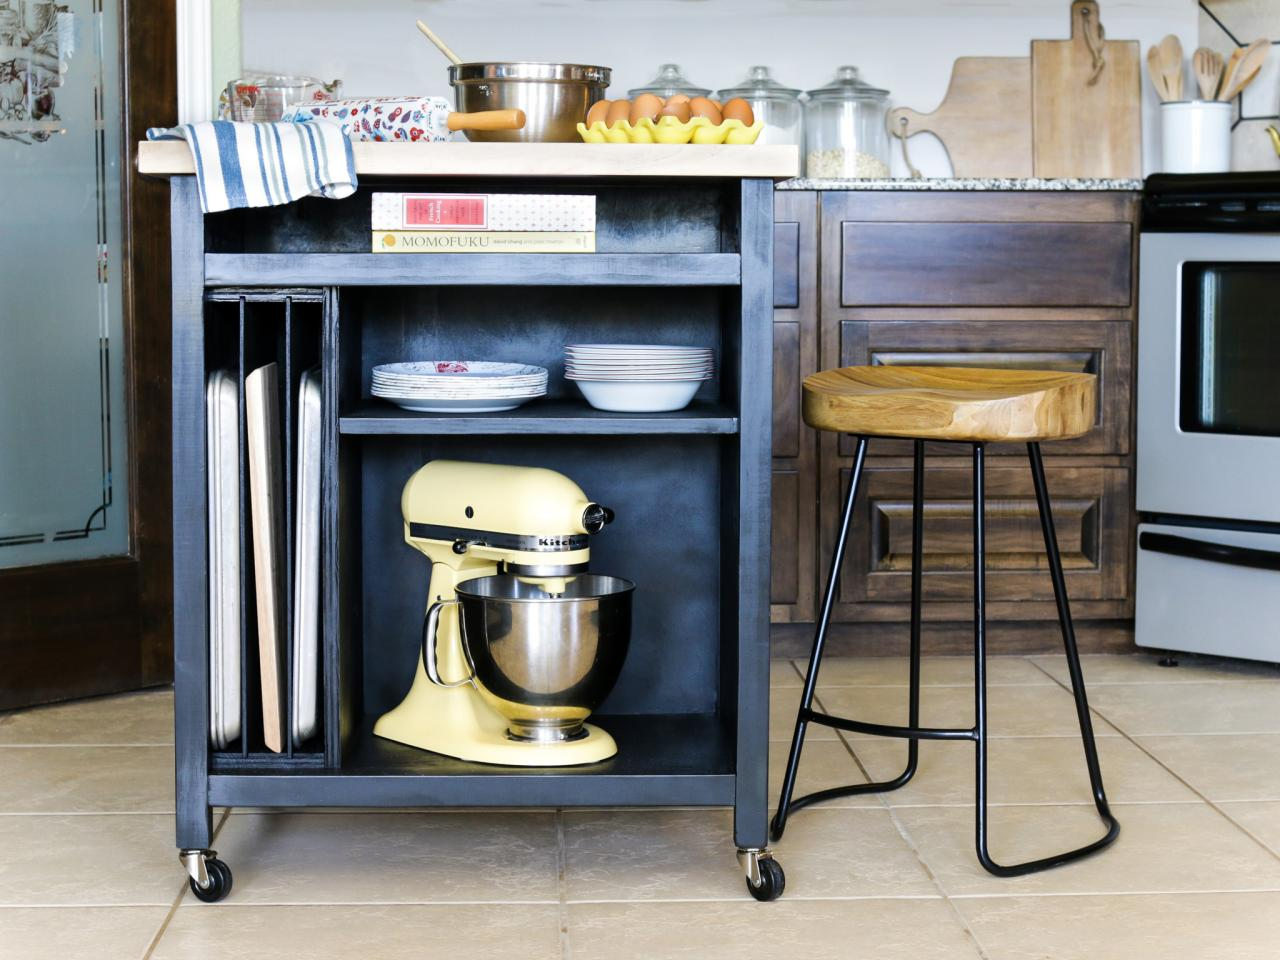 kitchen islands wheels pinterest - photo #5